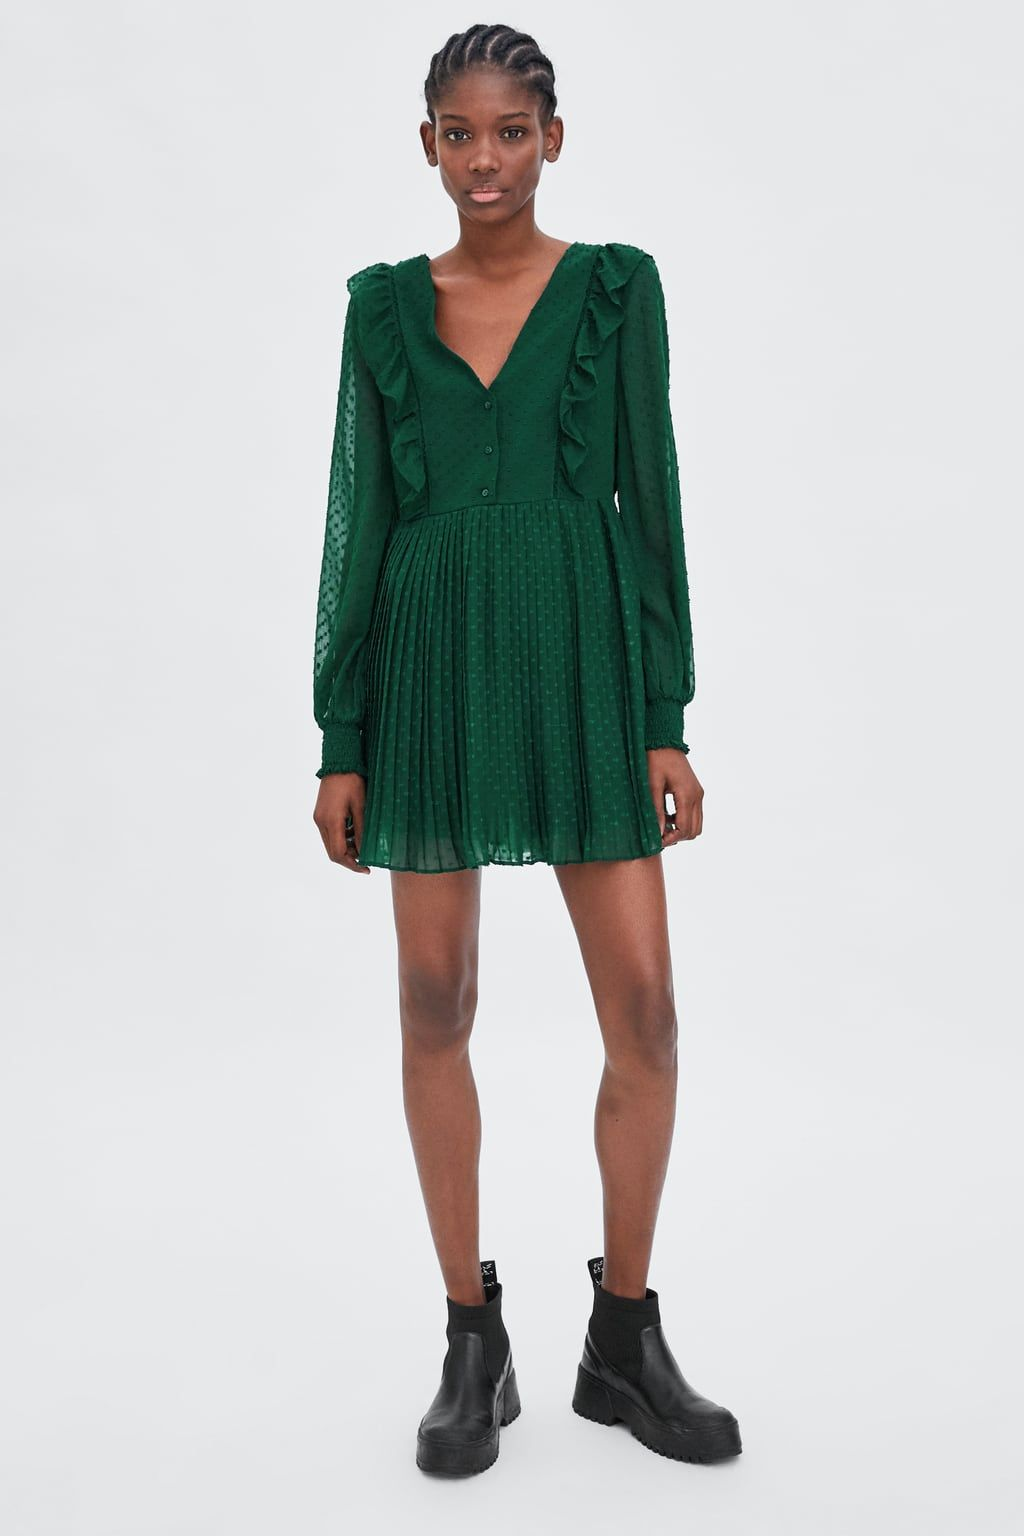 79cf3aaaf1a6f Image 1 of DOTTED MESH JUMPSUIT DRESS from Zara | Zara in 2019 ...